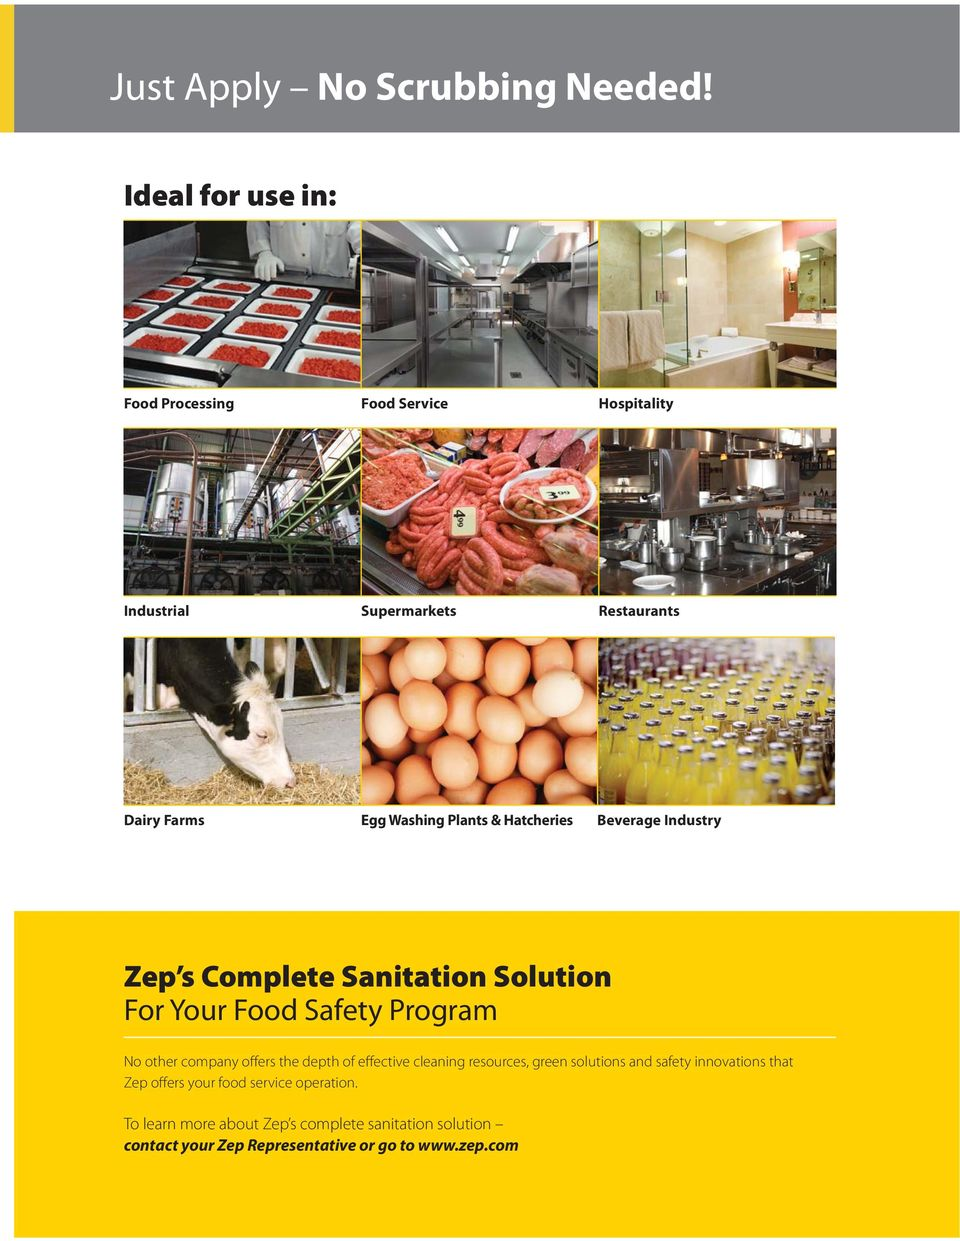 Hatcheries Beverage Industry Zep s Complete Sanitation Solution For Your Food Safety Program No other company offers the depth